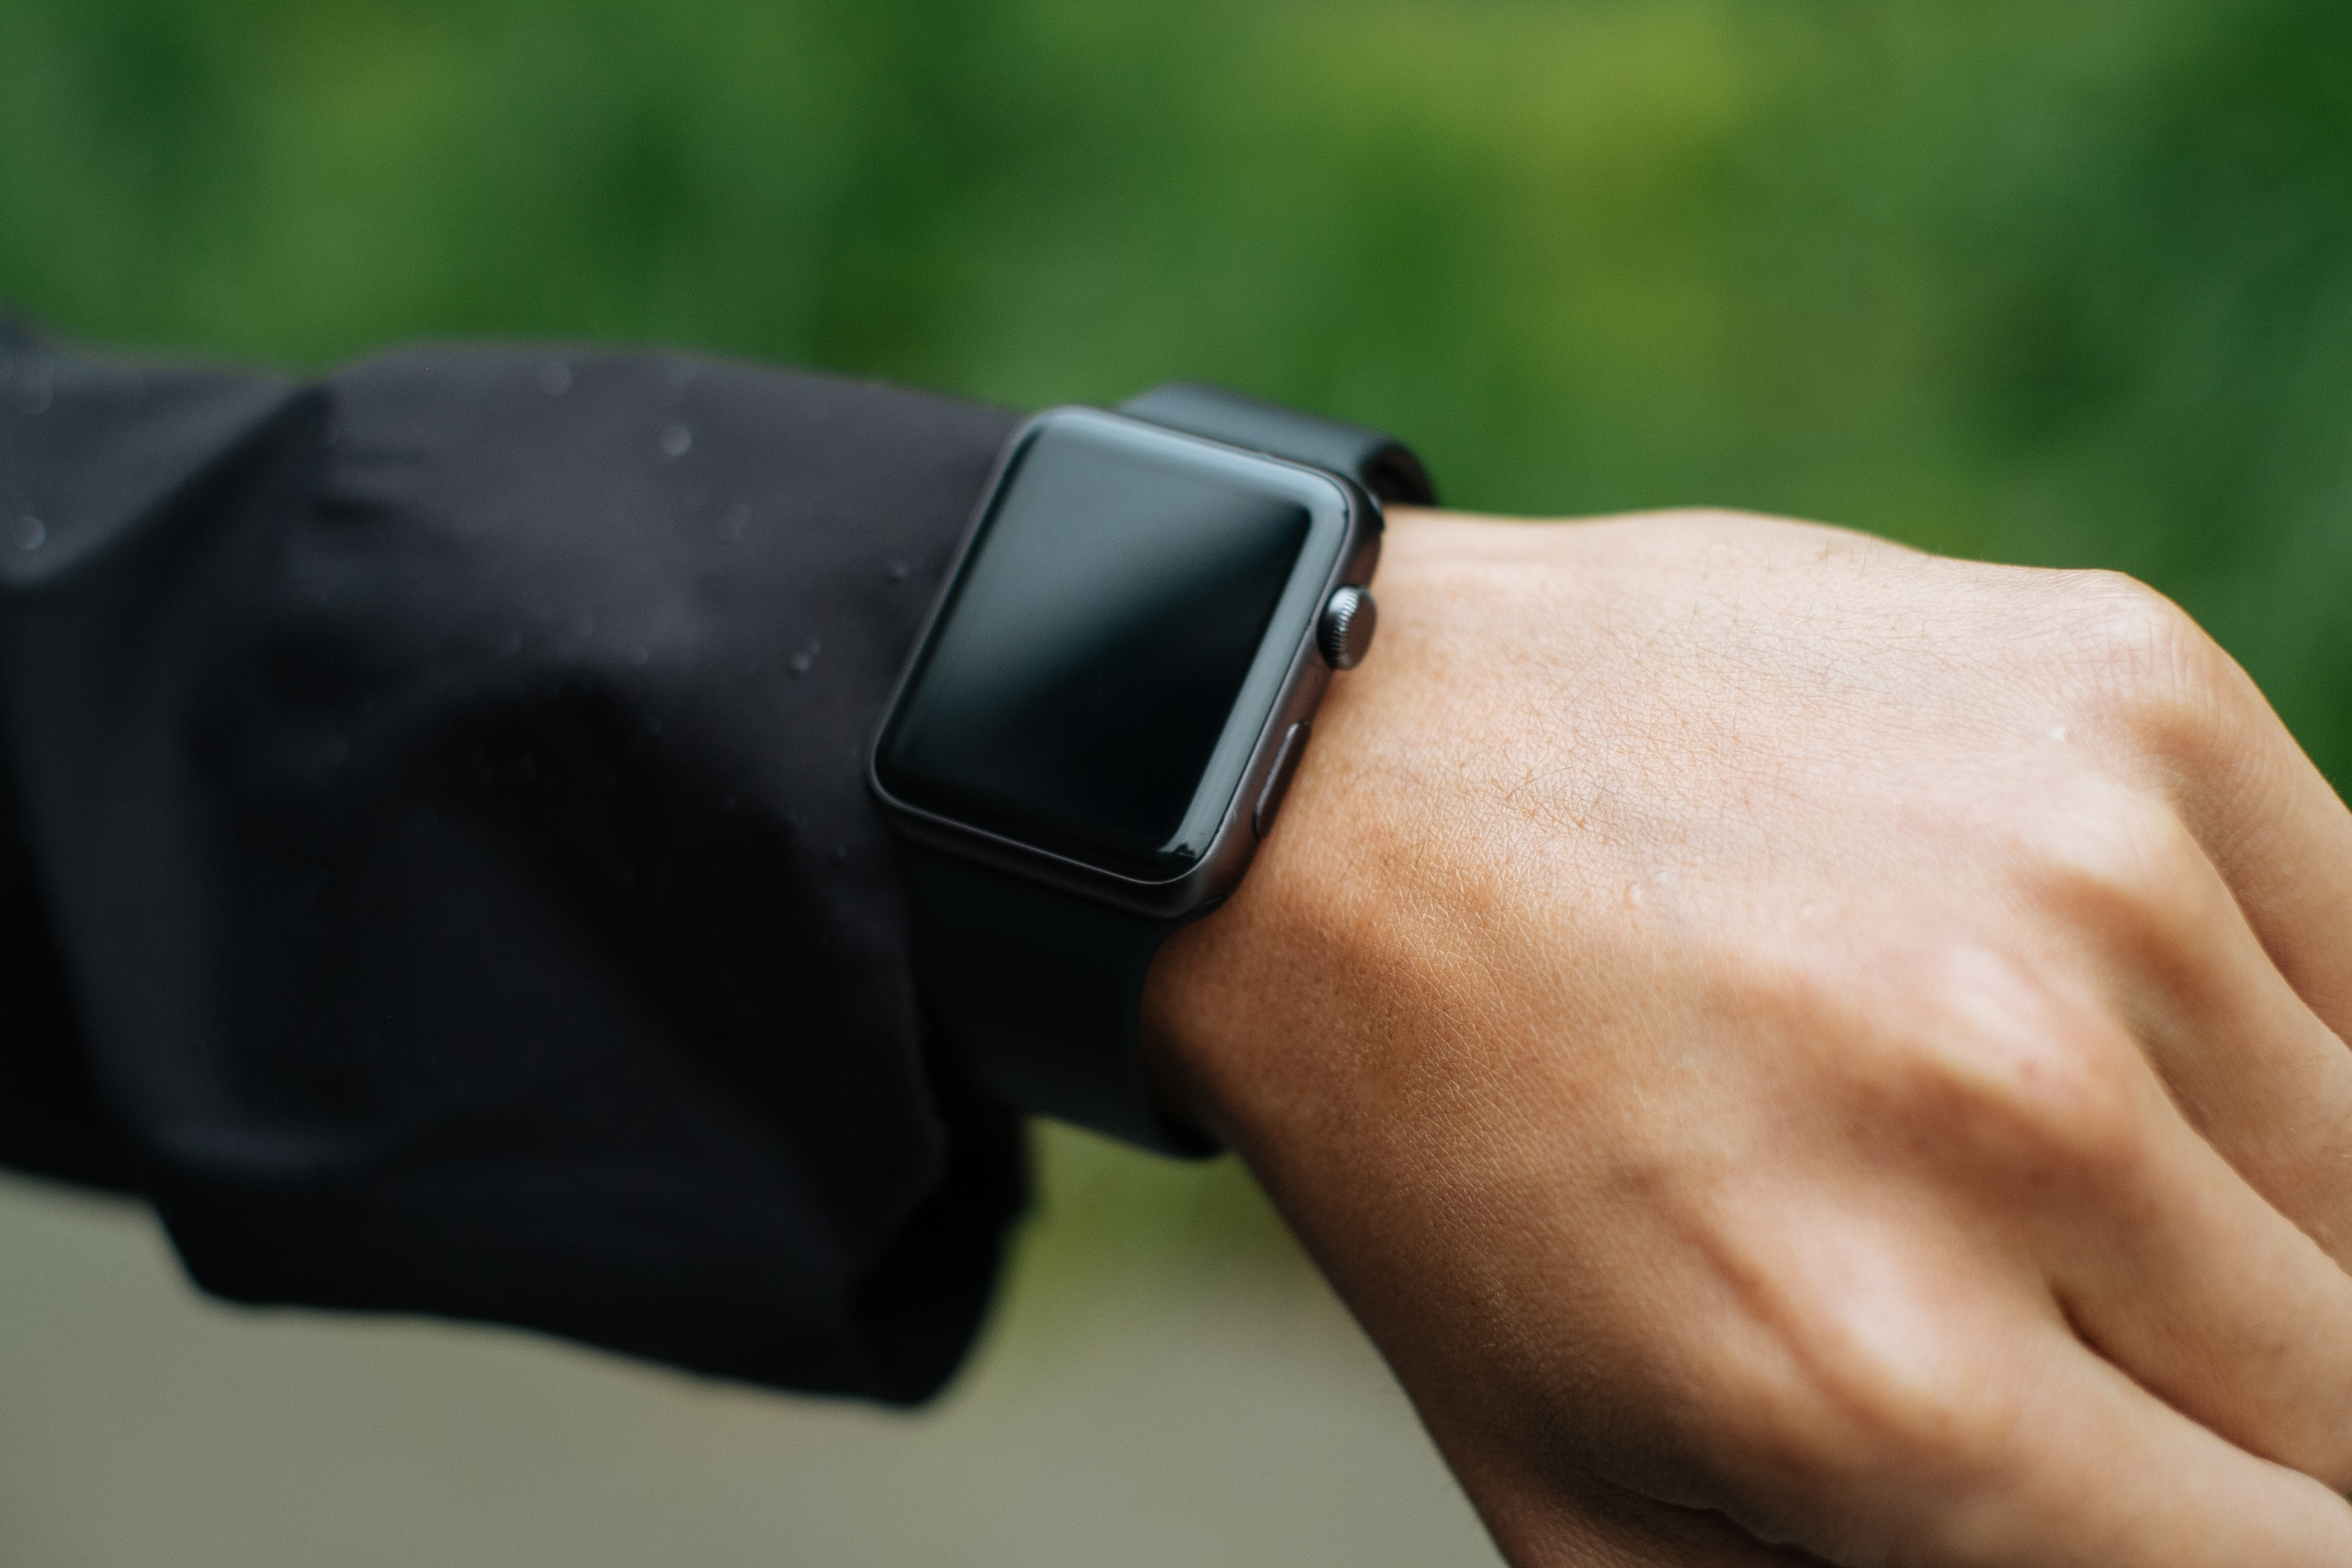 the apple watch changes the way we think about death